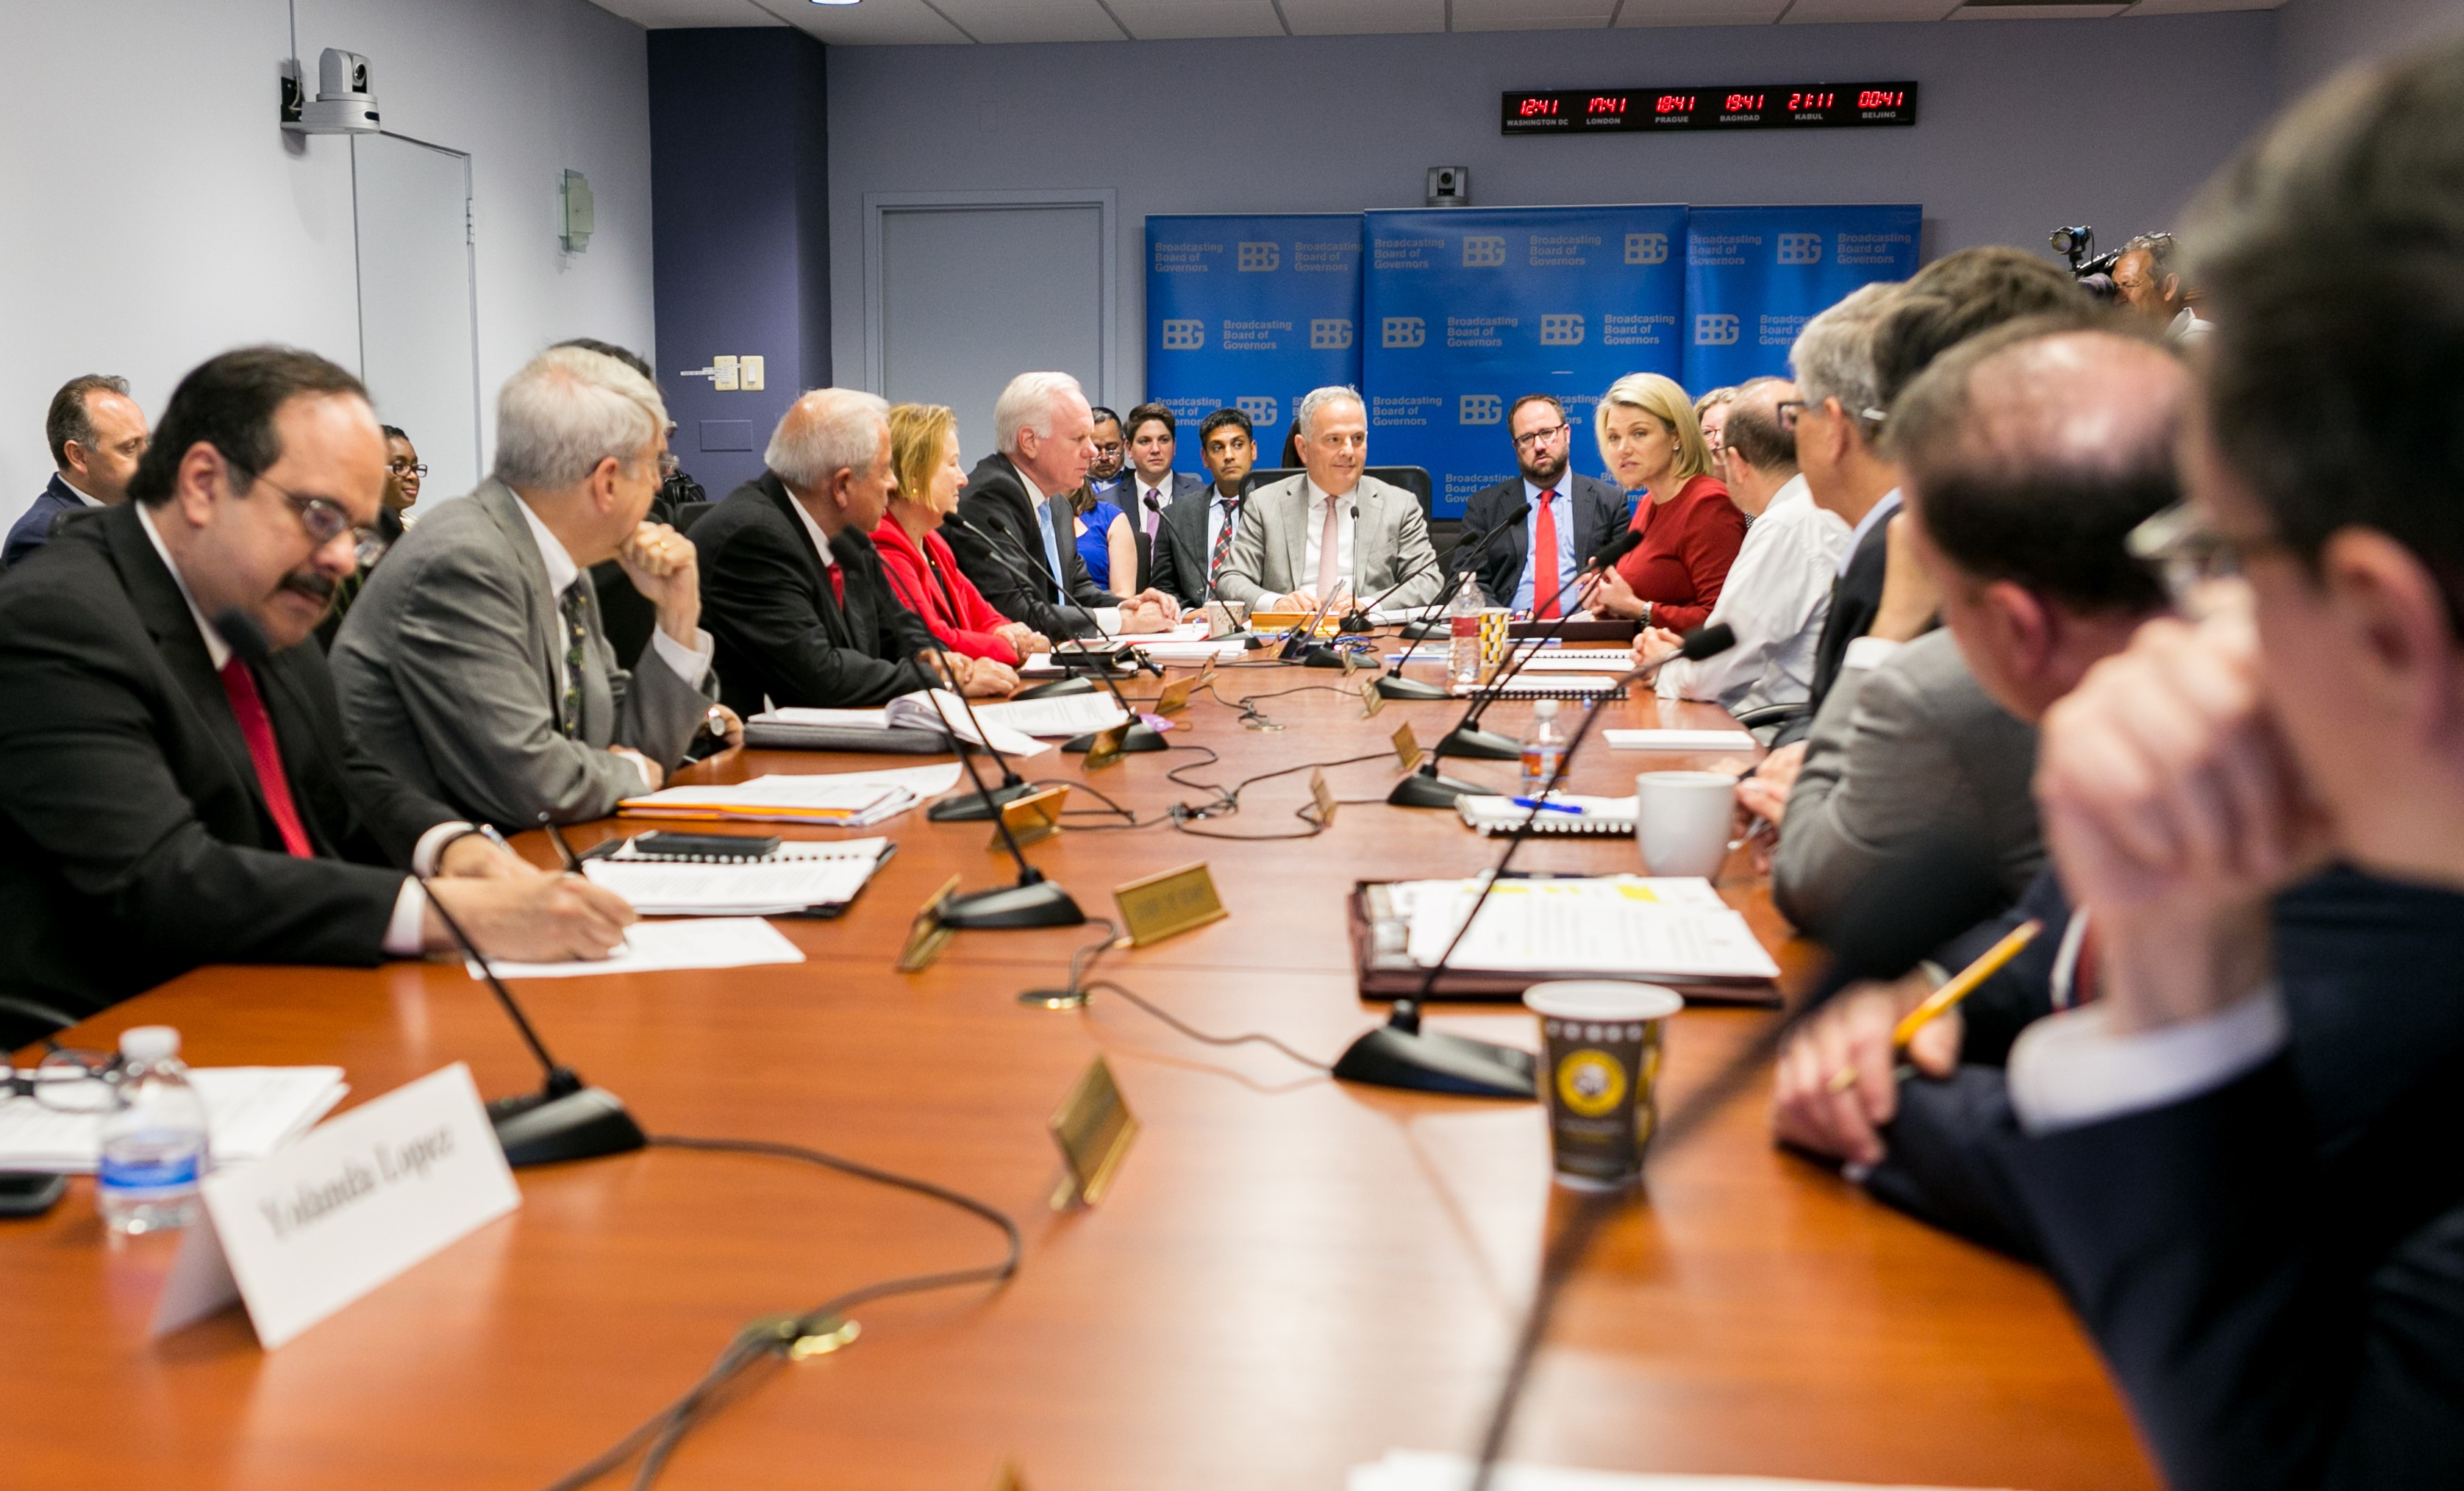 New personnel and high-quality content the focus of BBG board meeting